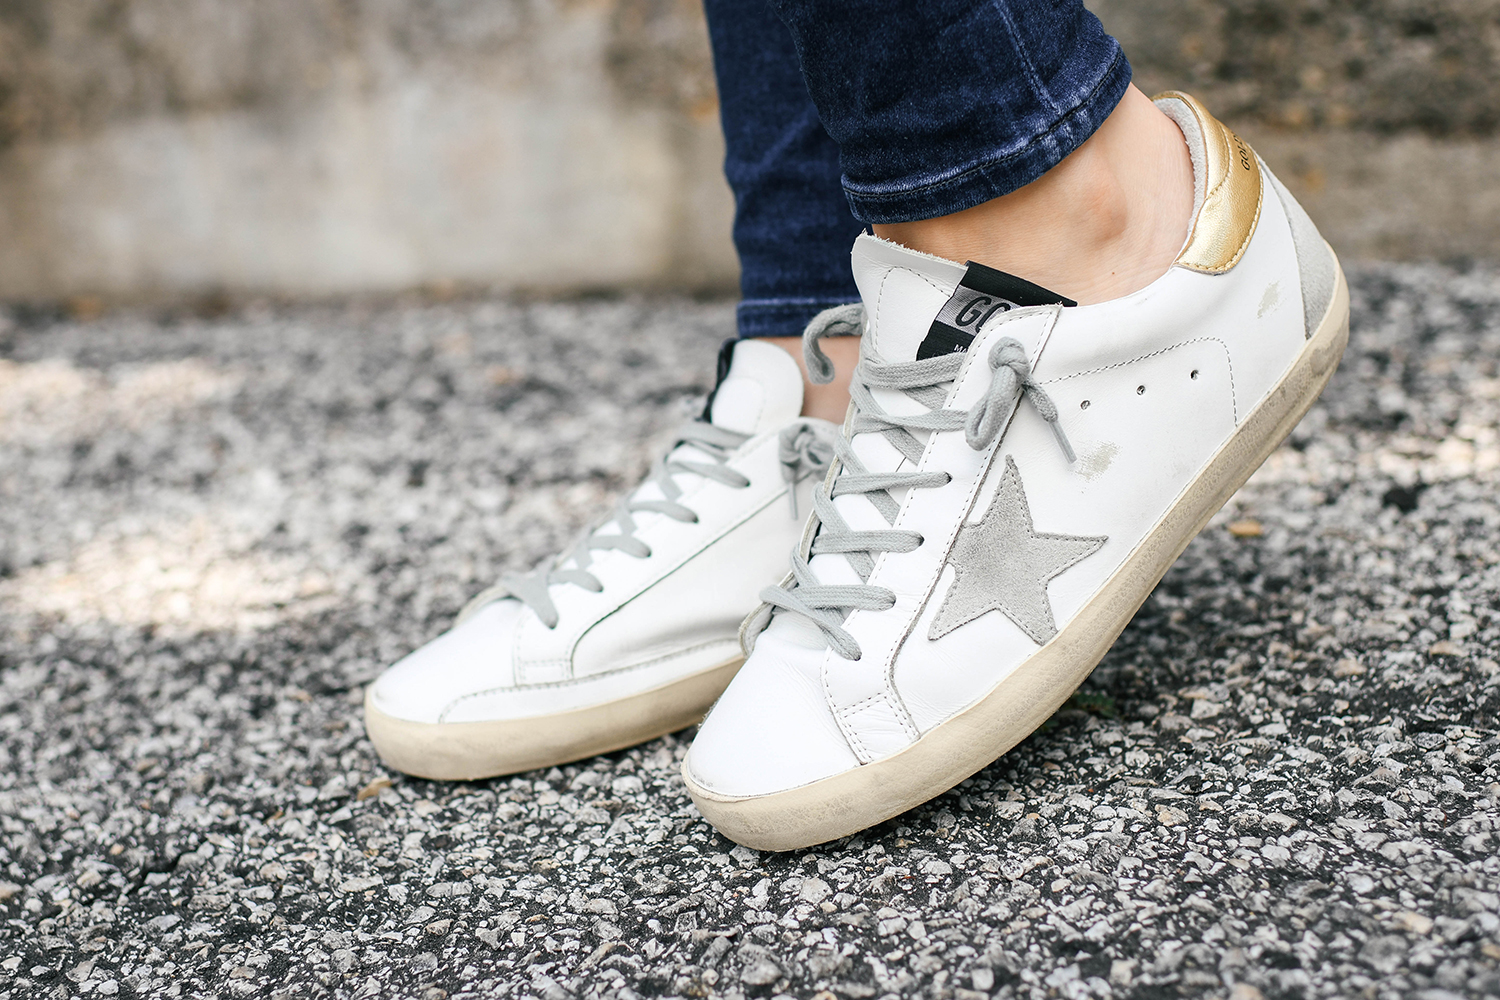 Casual Sneaker Style | Everyday Neutral Outfit Ideas